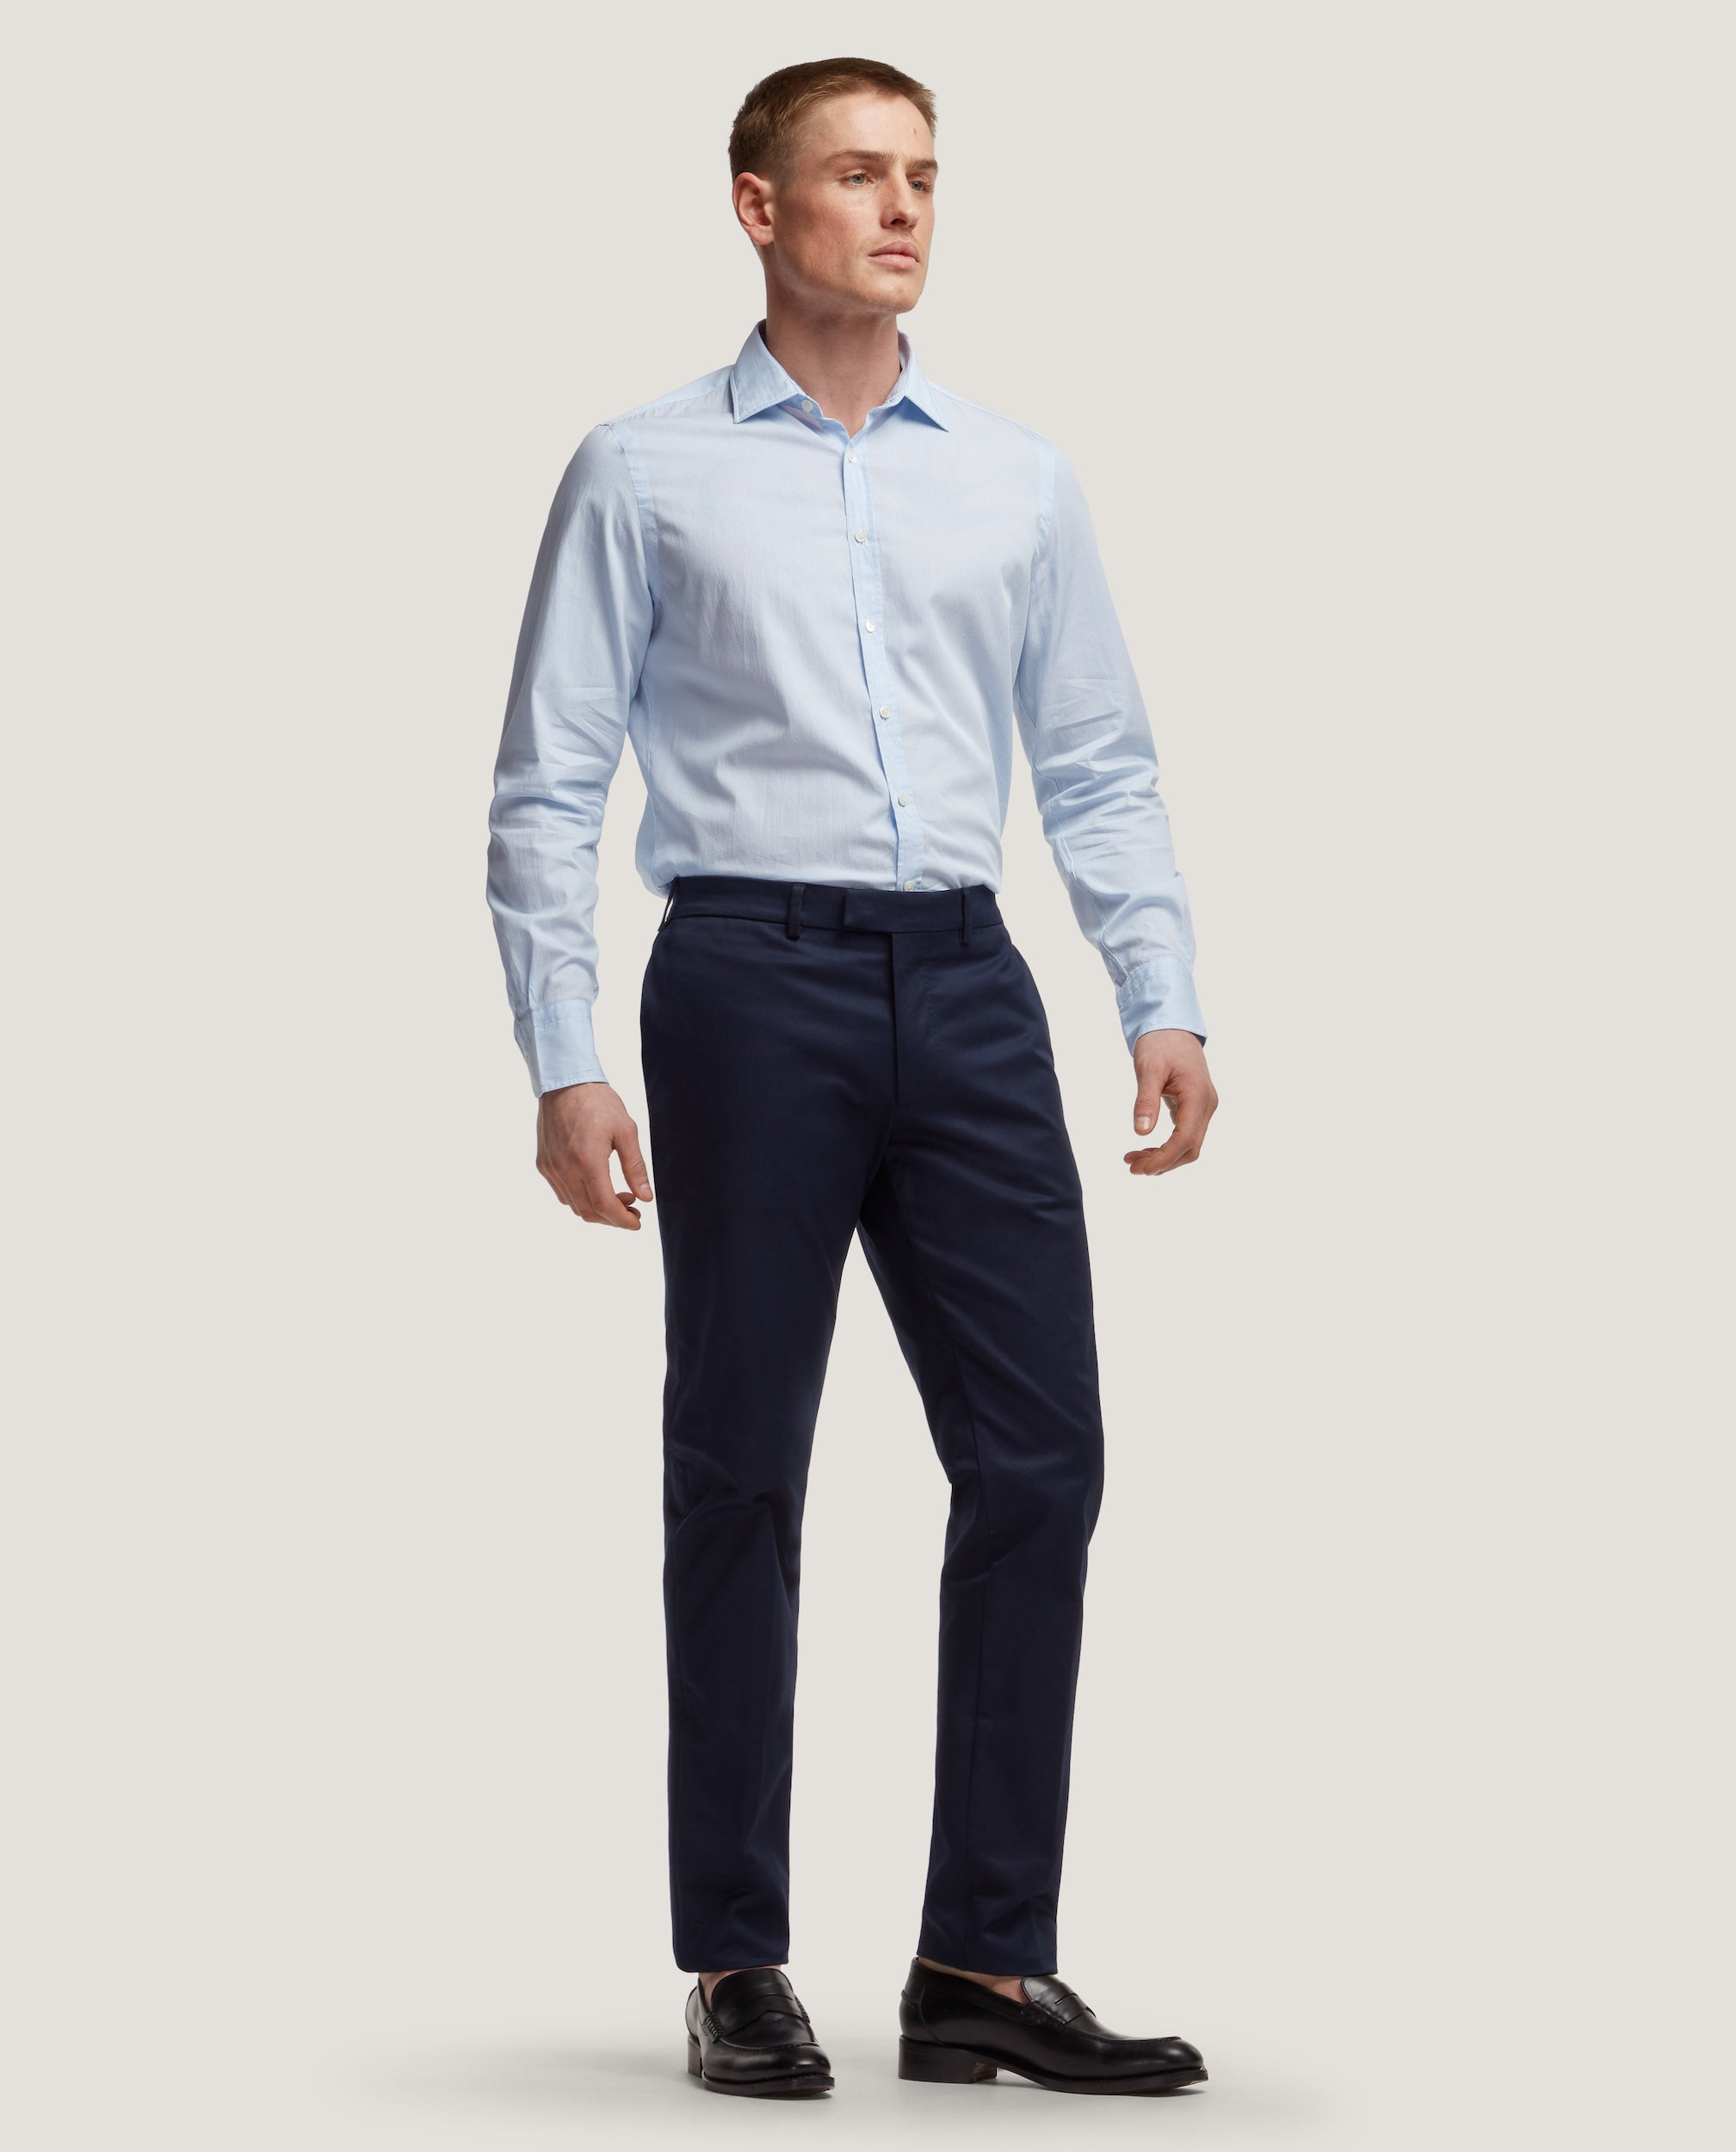 GEHRY Chino trousers | Slim fit | Cotton twill | Night Blue